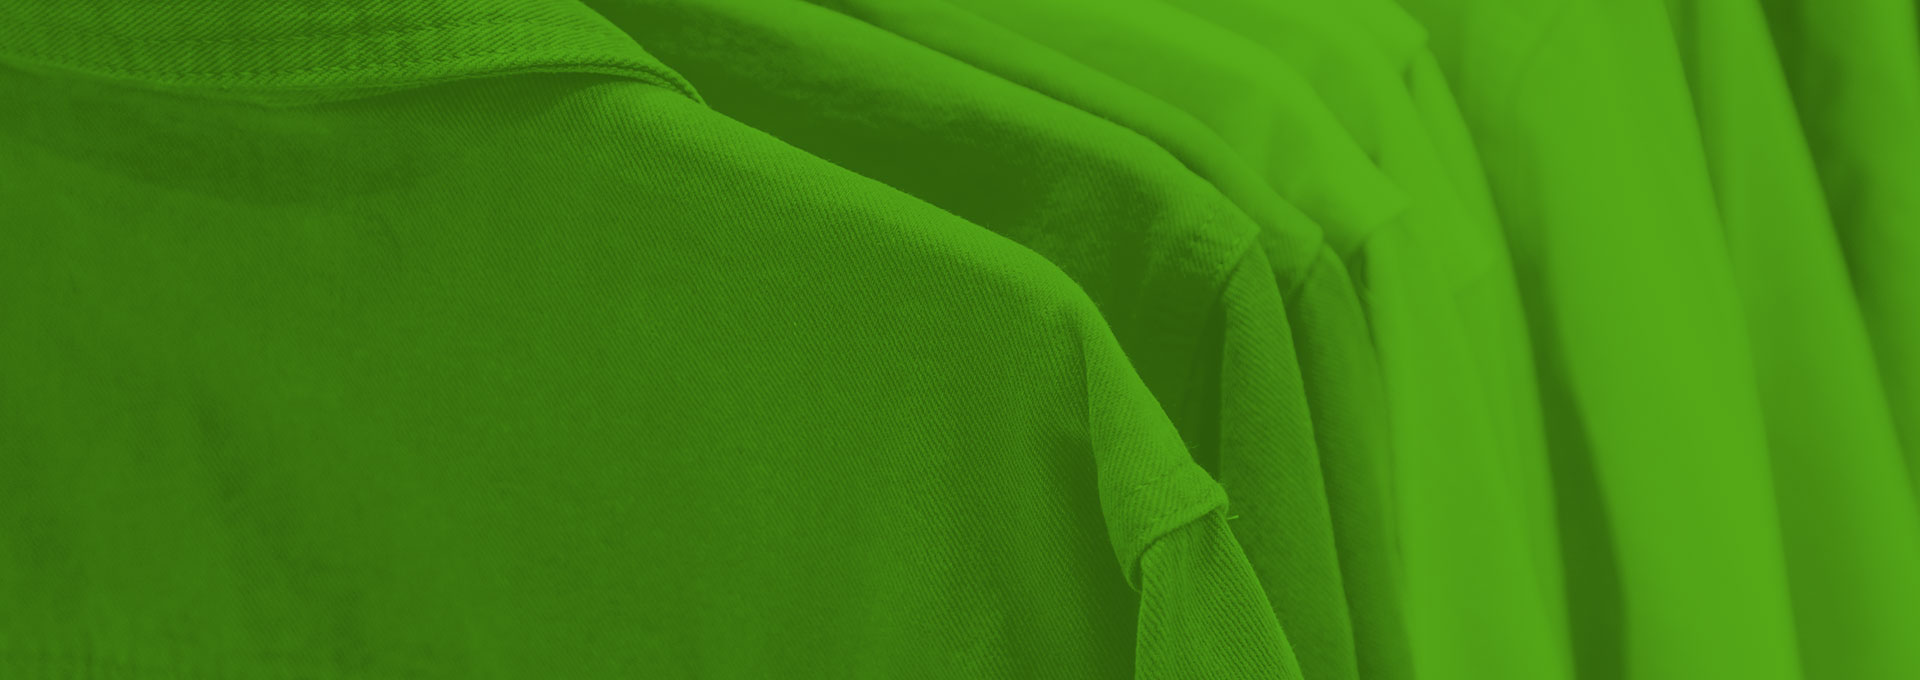 Joe's Organic Cleaners Invests in Organic Dry Cleaning for a More Sustainable Future